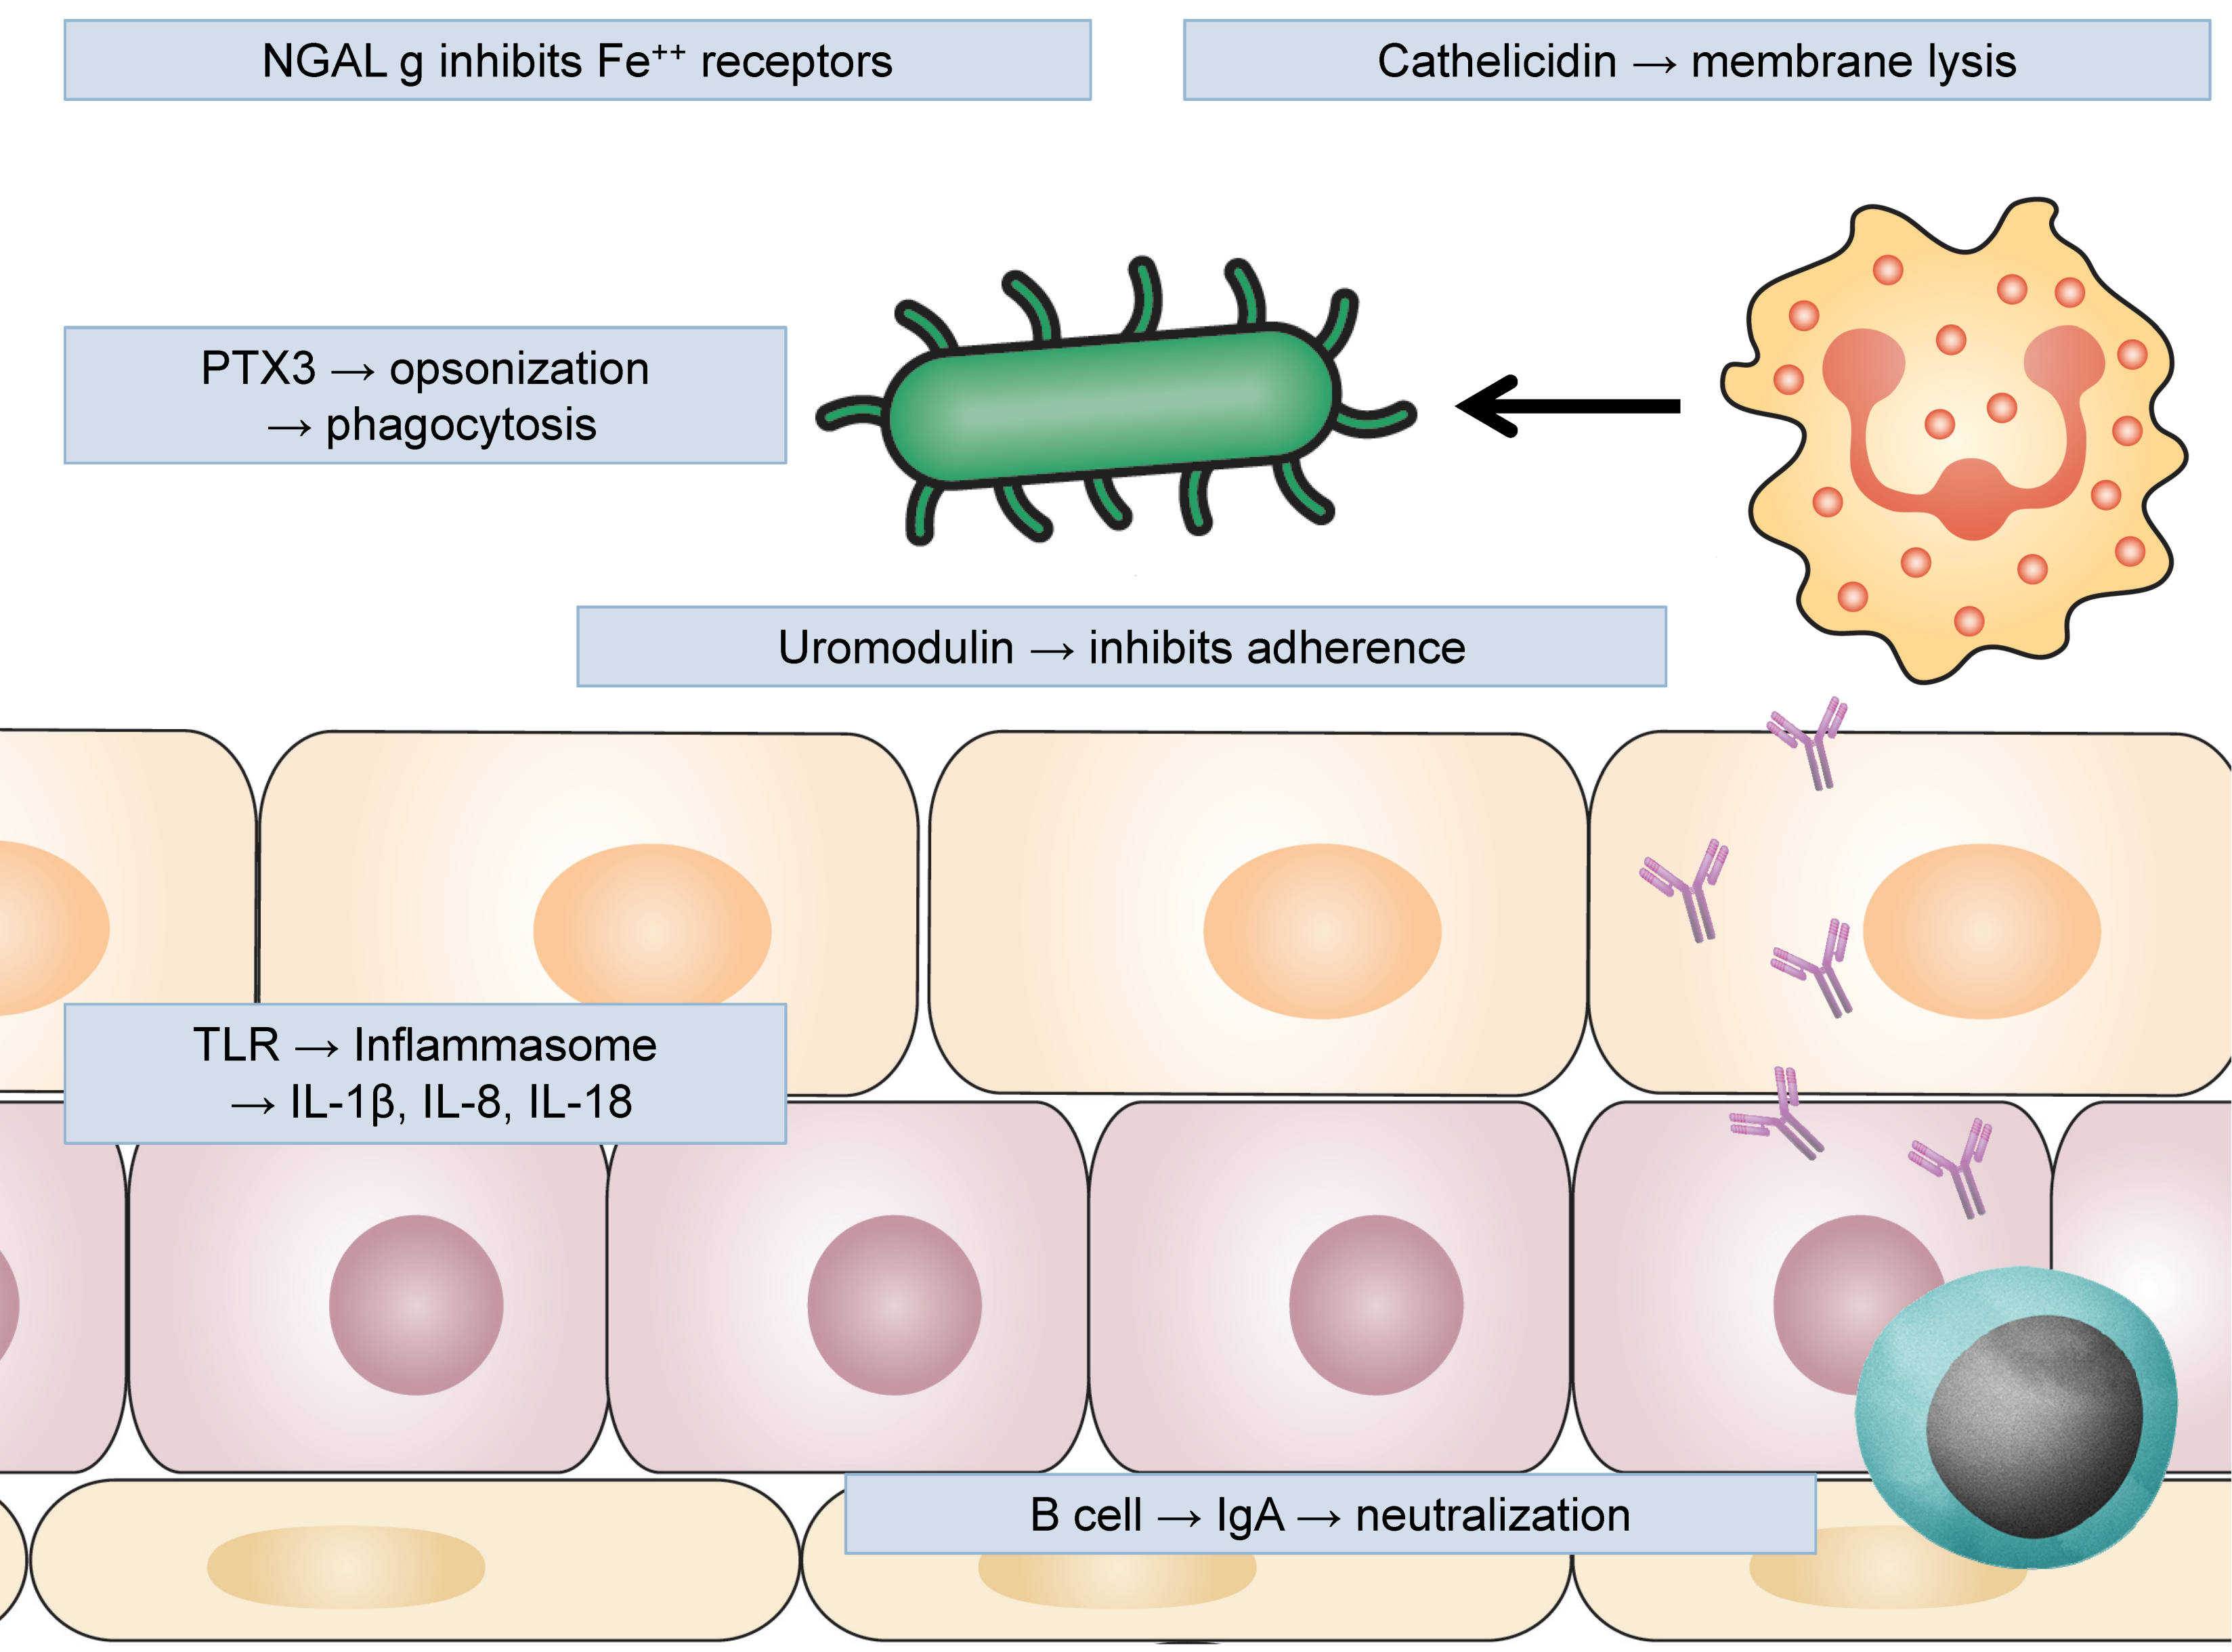 Figure 2: Uromodulin produced by urothelium inhibits adherence of UPEC; NGAL (neutrophil gelatinase-associated lipocalin) inhibits iron receptors blocking bacterial capacity to proliferate; cathelicidin and other antimicrobial peptides cause membrane lysis; pentraxin 3 (PTX3) opsonizes uropathogens and facilitates their phagocytosis by neutrophils and macrophages; epithelial cells activate inflammasome trough TLRs, producing pro-inflammatory cytokines; adaptive immune response also participates with B lymphocytes producing antigen-specific IgA neutralizing uropathogens.